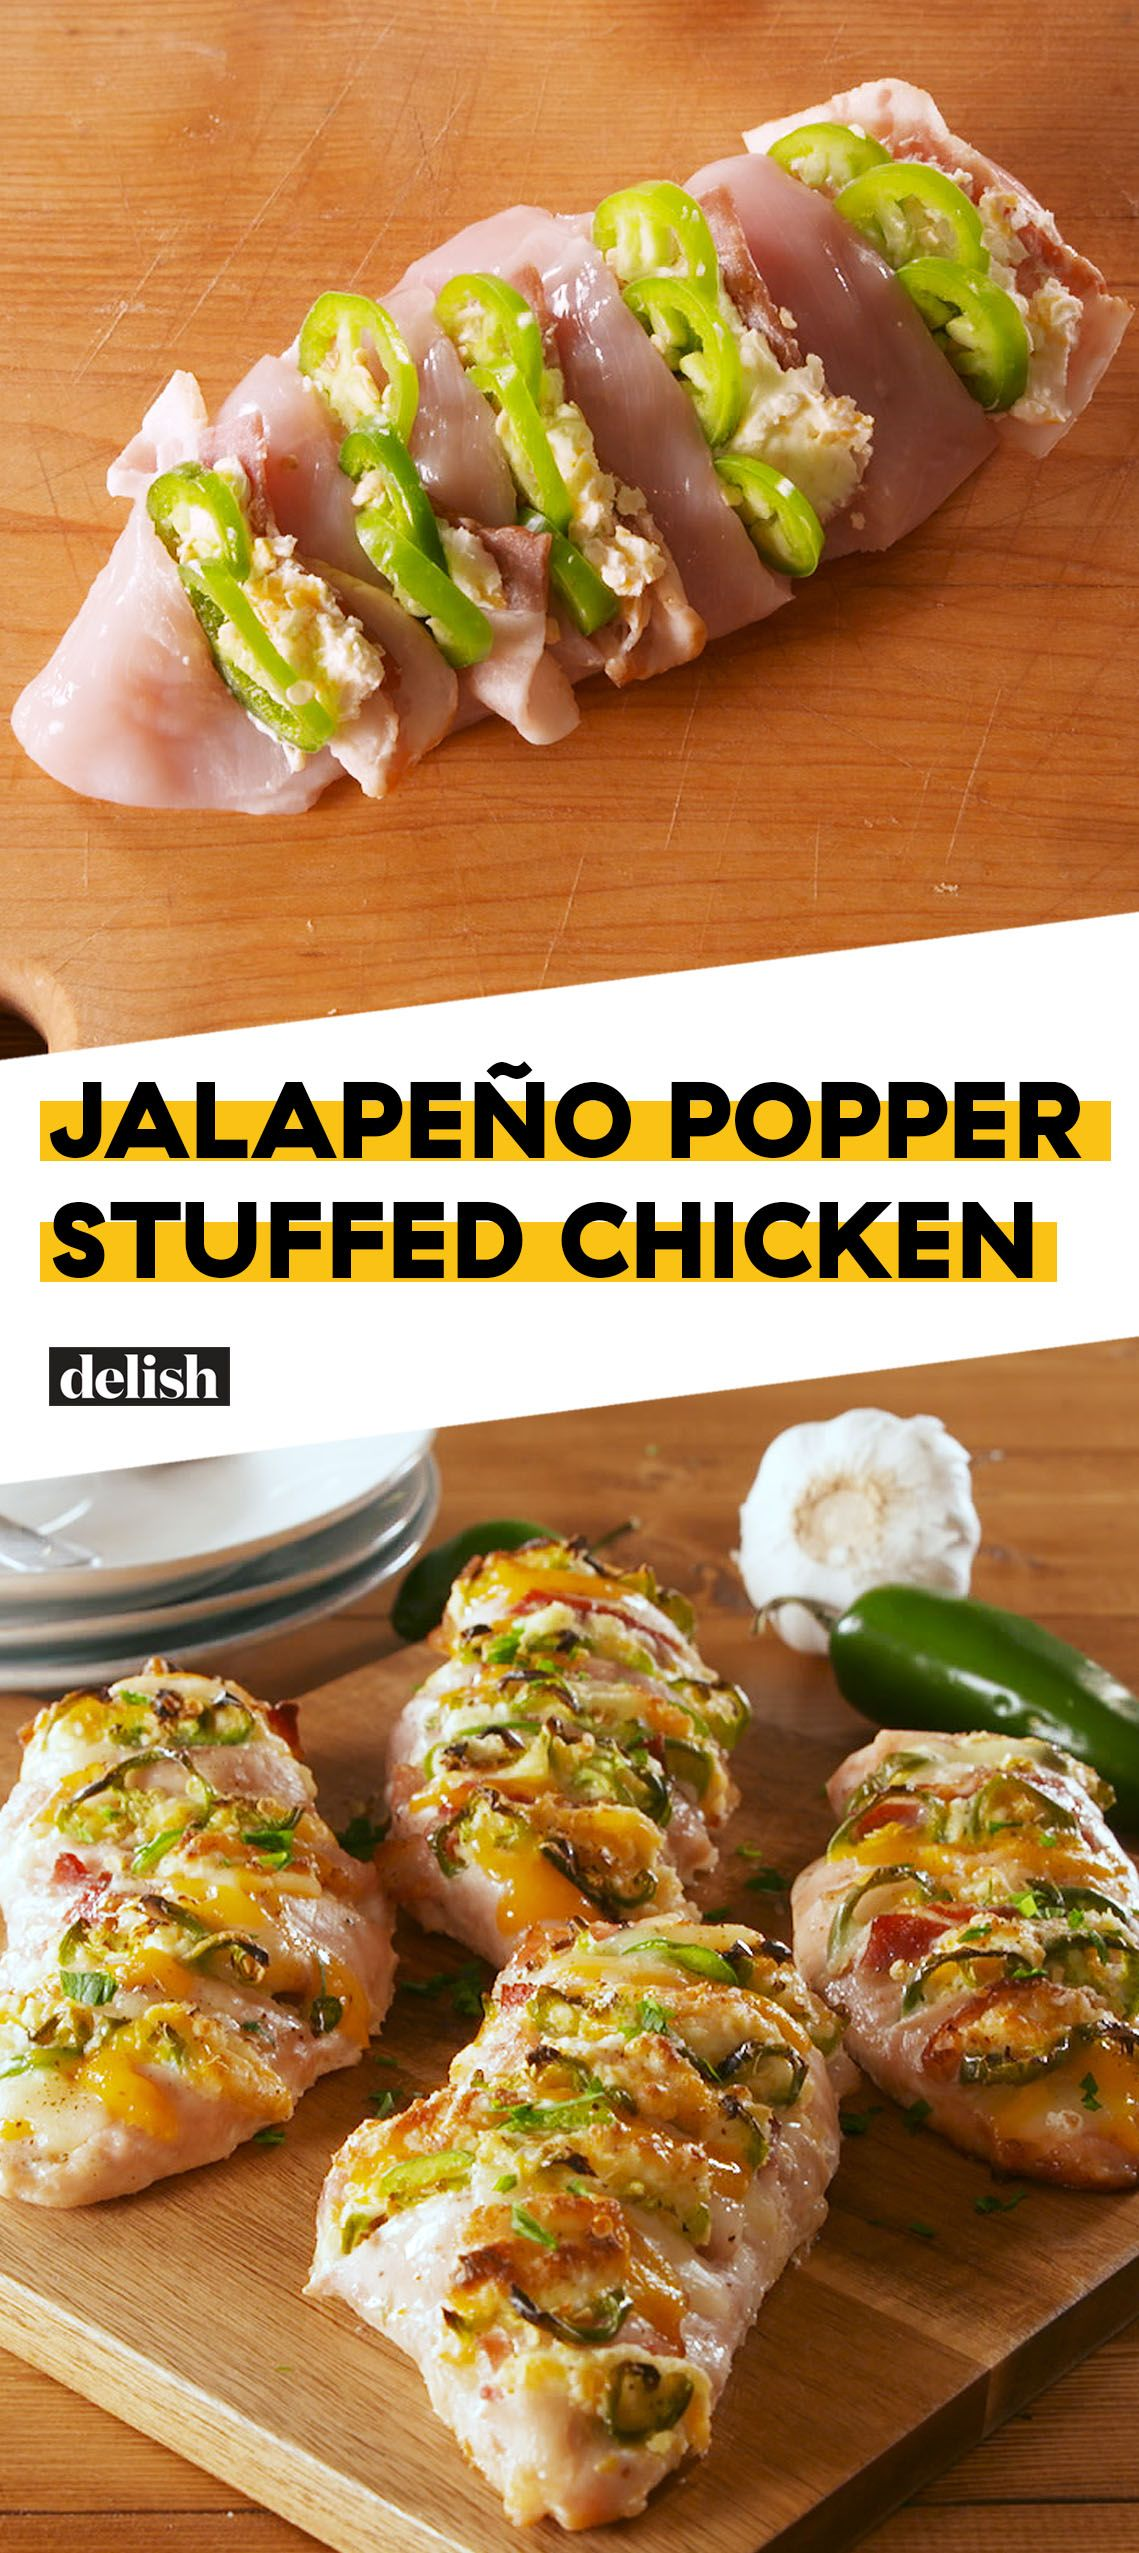 Jalapeño Popper Stuffed Chicken images